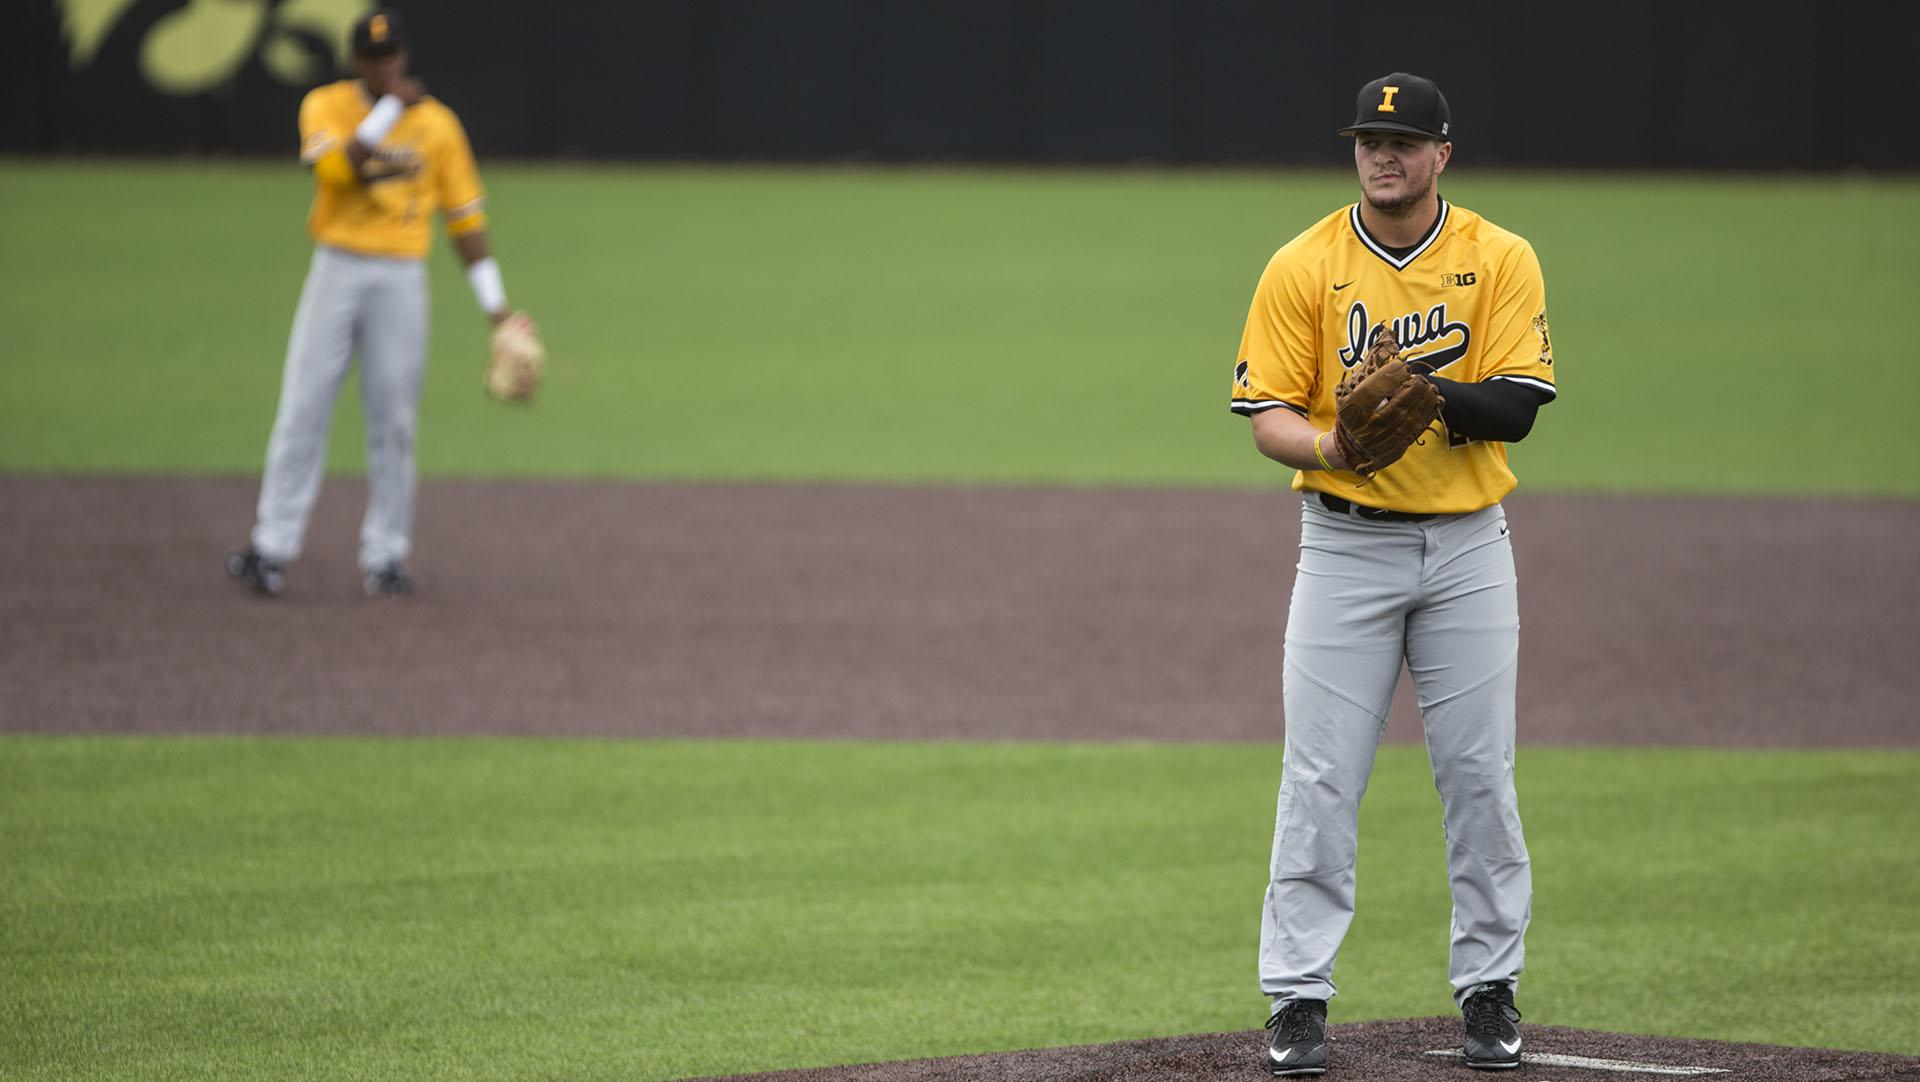 Iowa pitcher Brady Schanuel stands on the mound during game 2 of the Black and Gold World Series at Duane Banks Field on Thursday, Oct. 12, 2017. The Gold team defeated the Black team 7-6. (Ben Smith/The Daily Iowan)